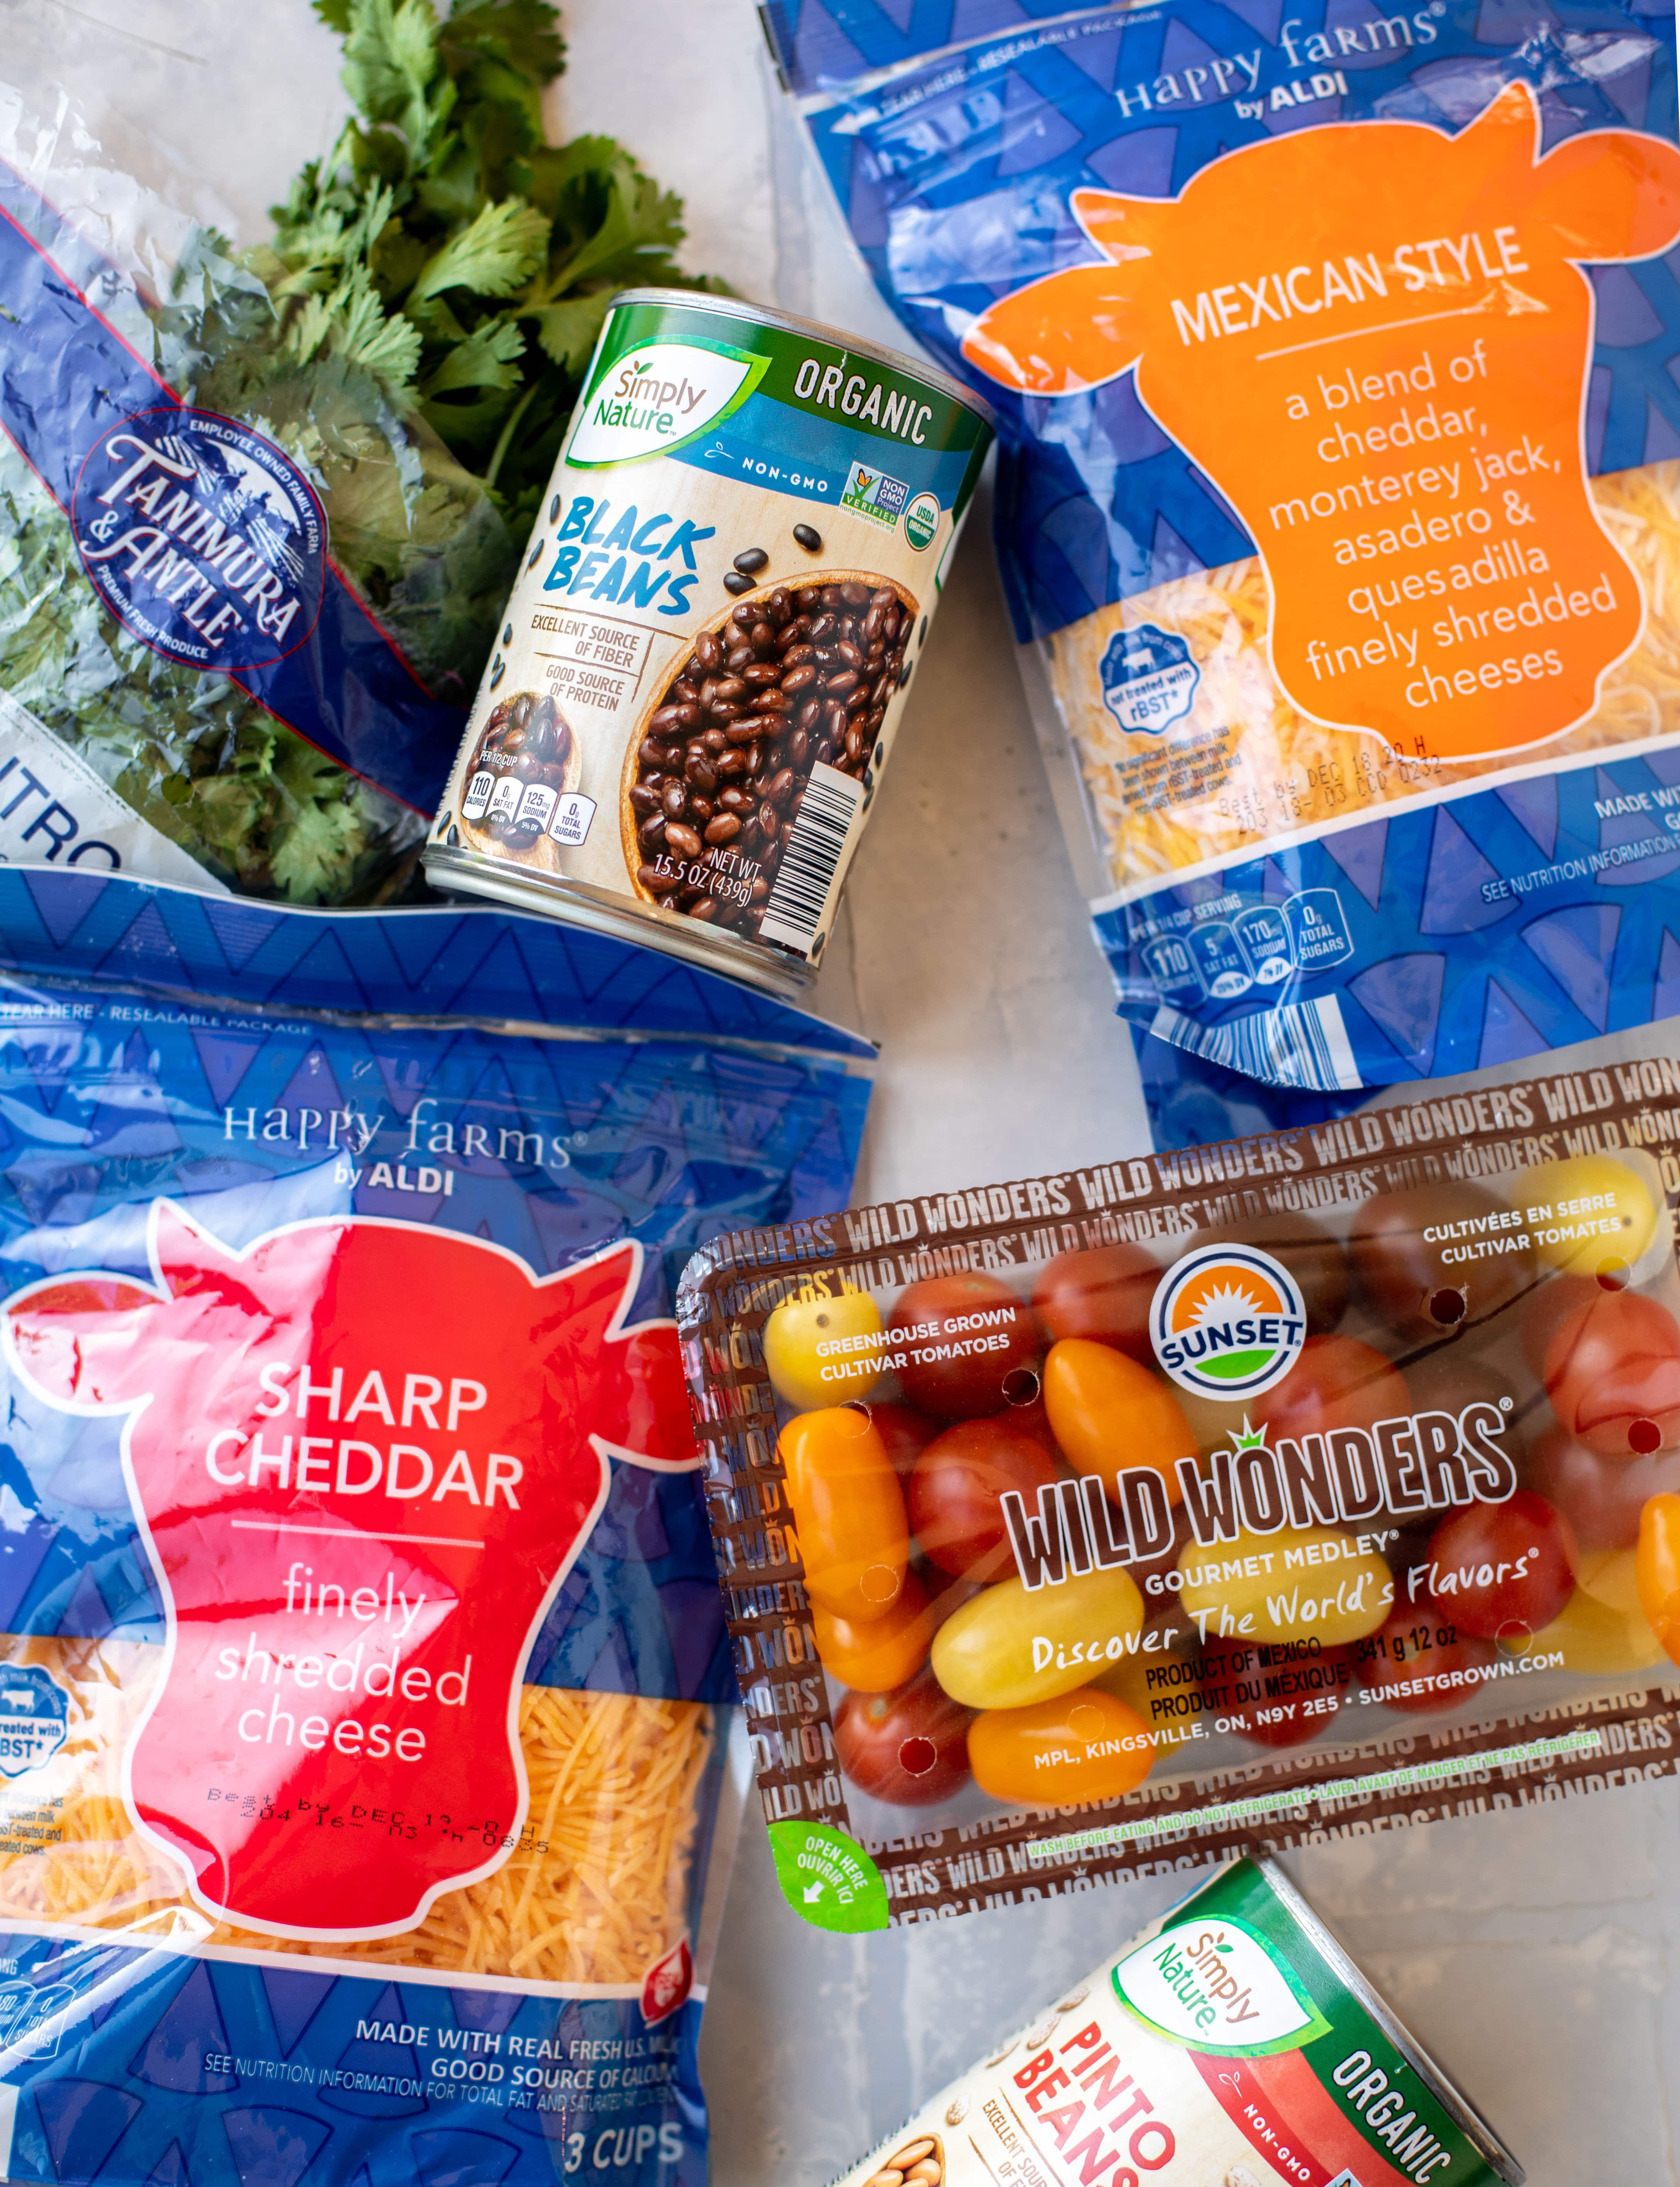 beans, cheese and produce from ALDI